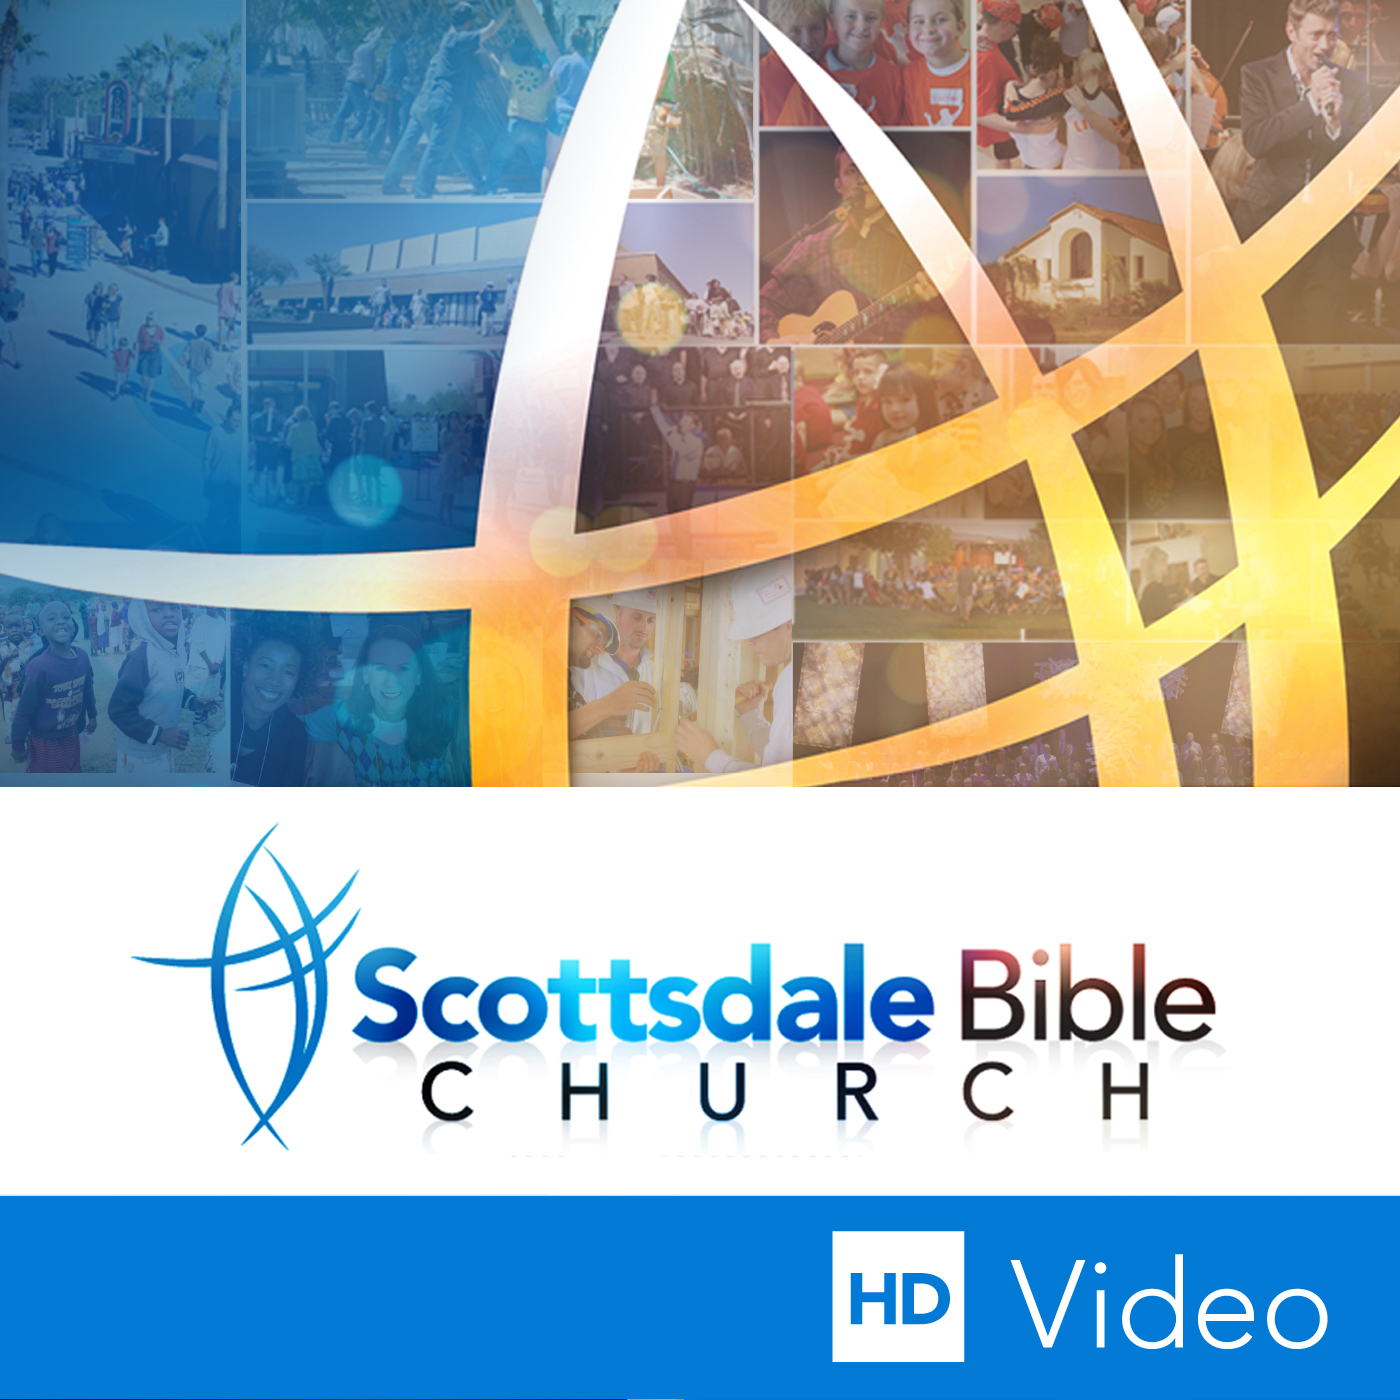 Scottsdale Bible Church Sermon HD Video